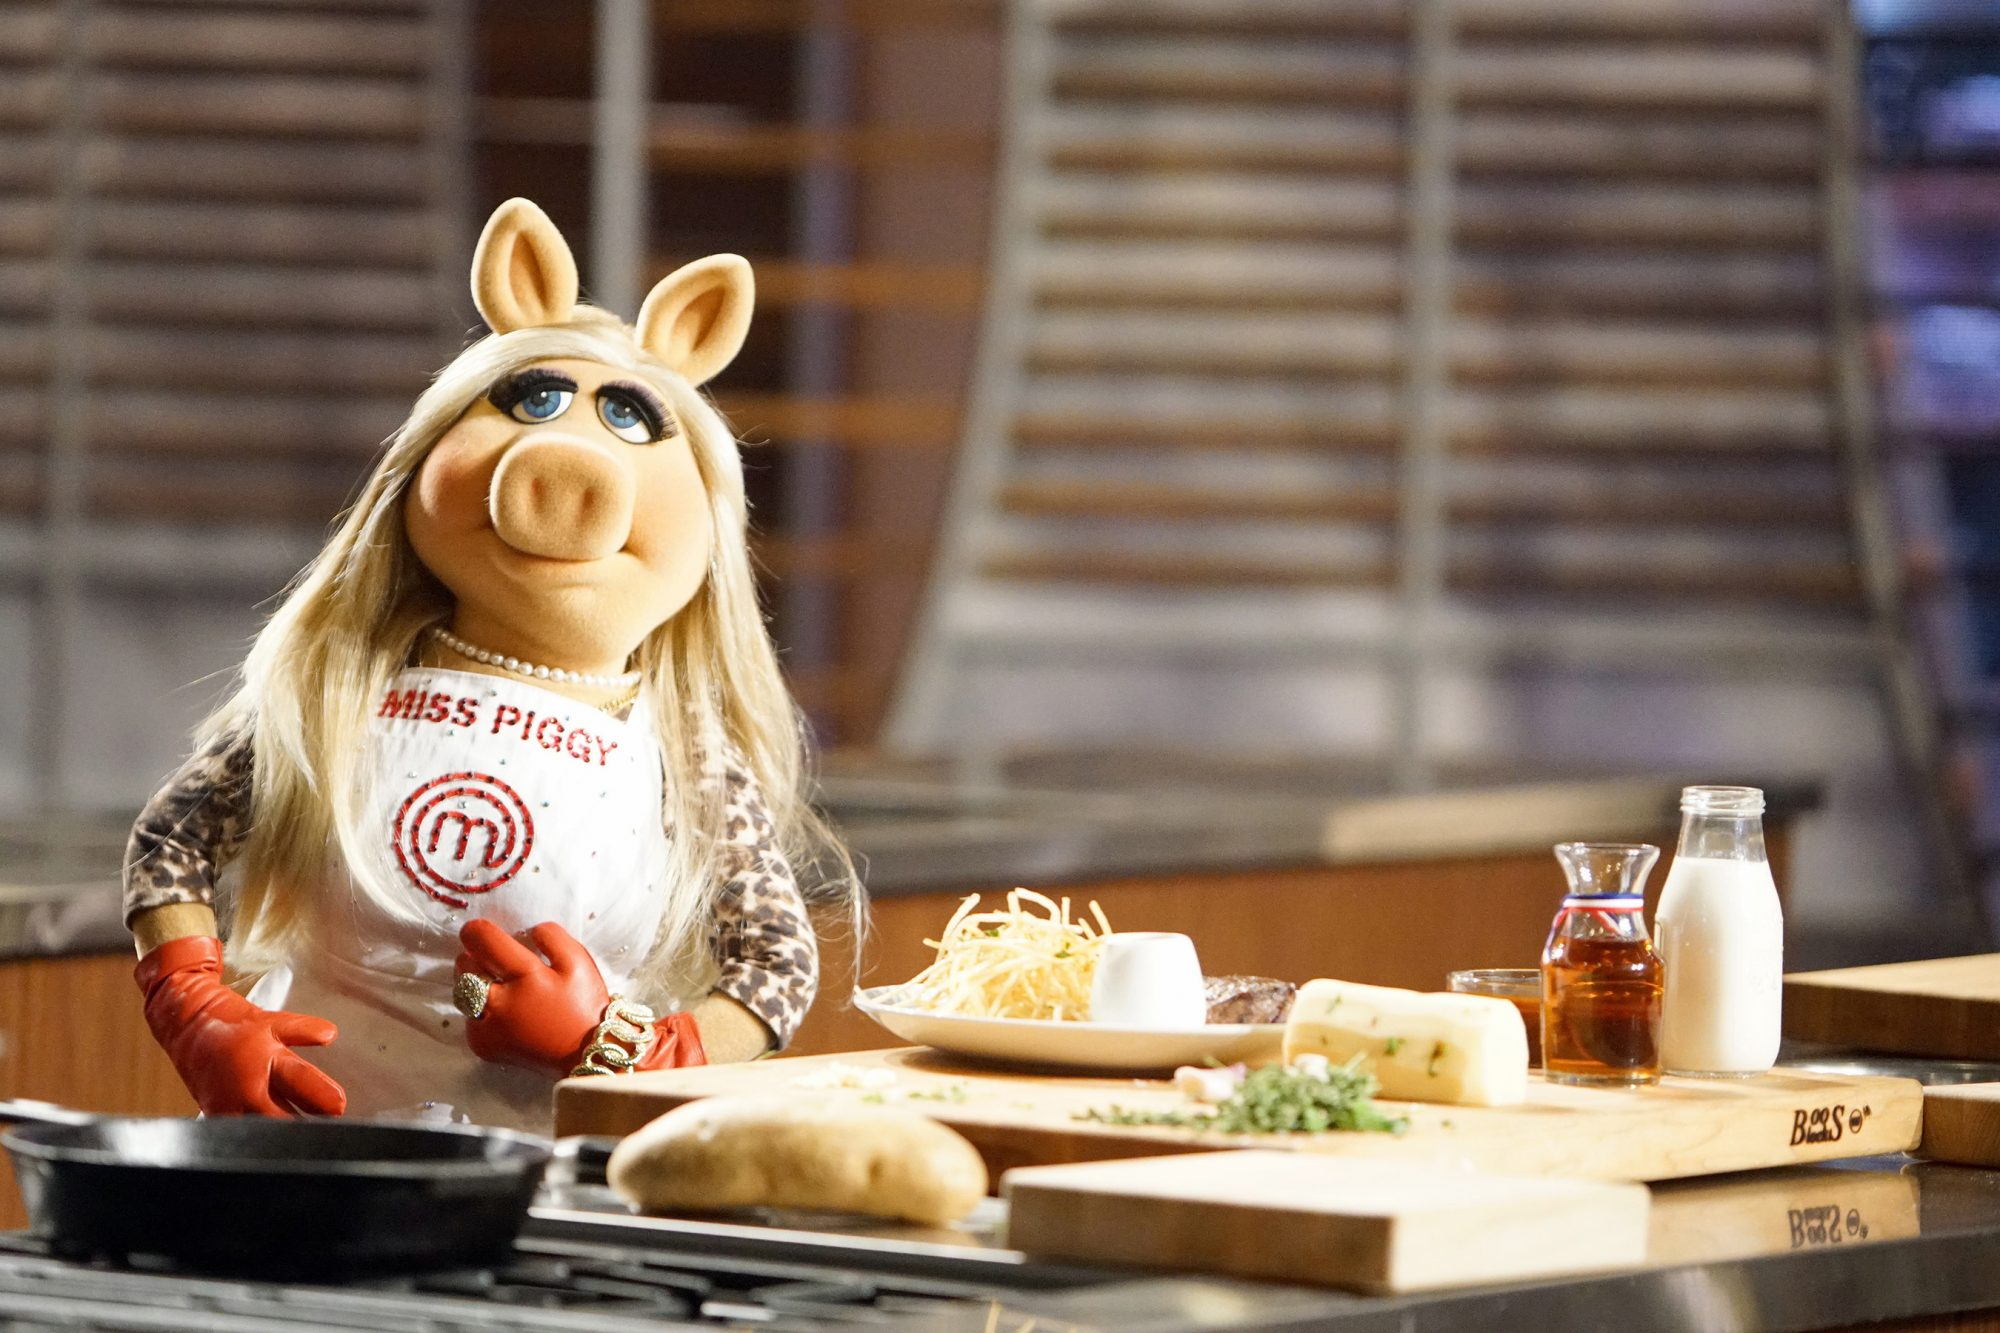 Miss Piggy slams Gordon Ramsay over 'MasterChef Junior'